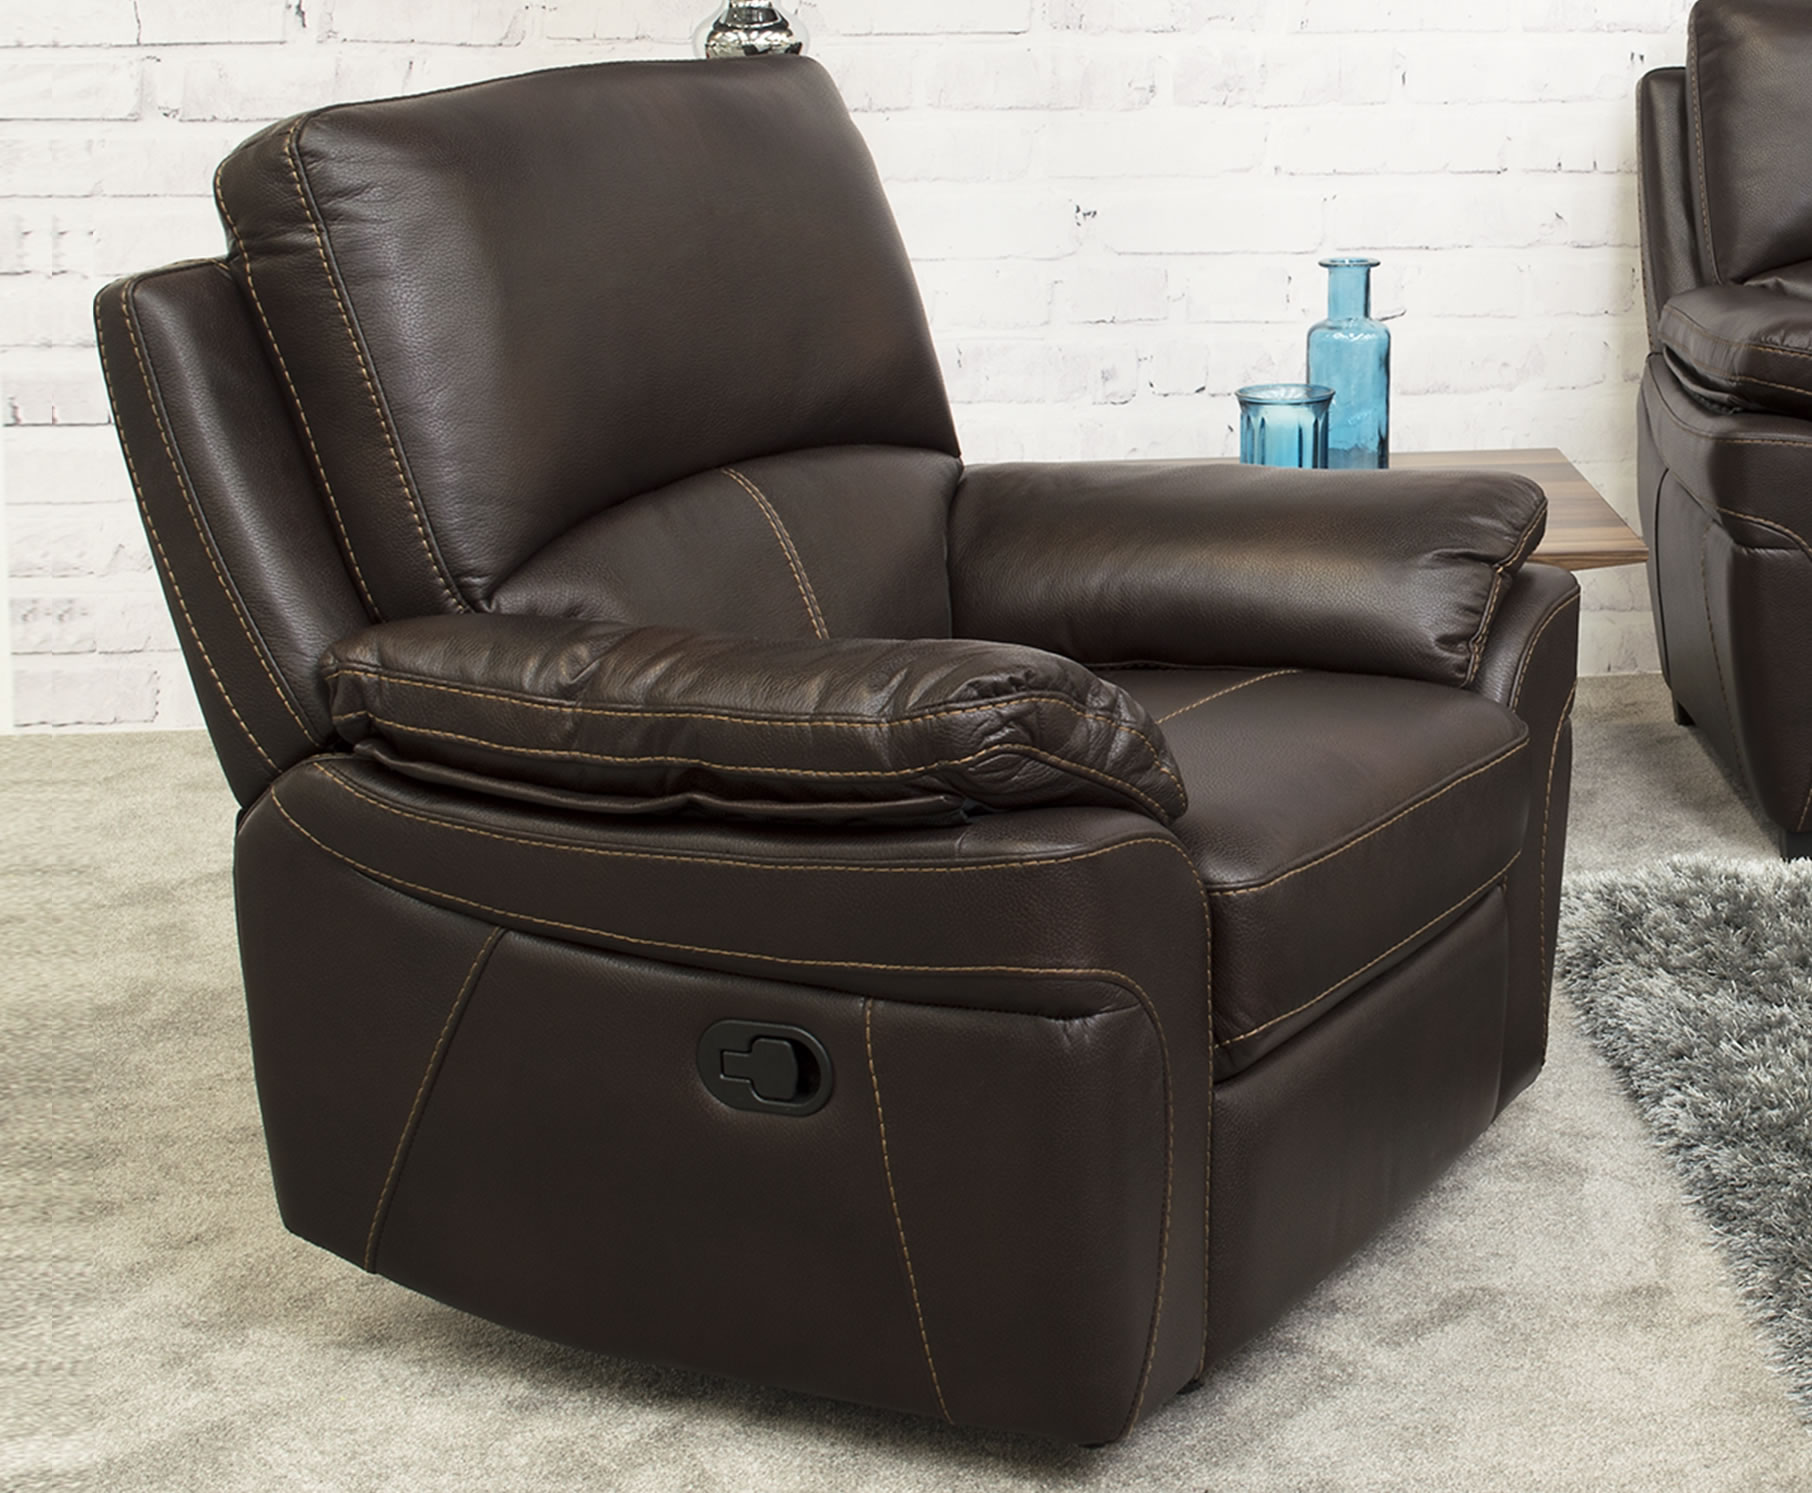 leather look armchair belvedere brown leather look recliner arm chair 16656 | 1451 1